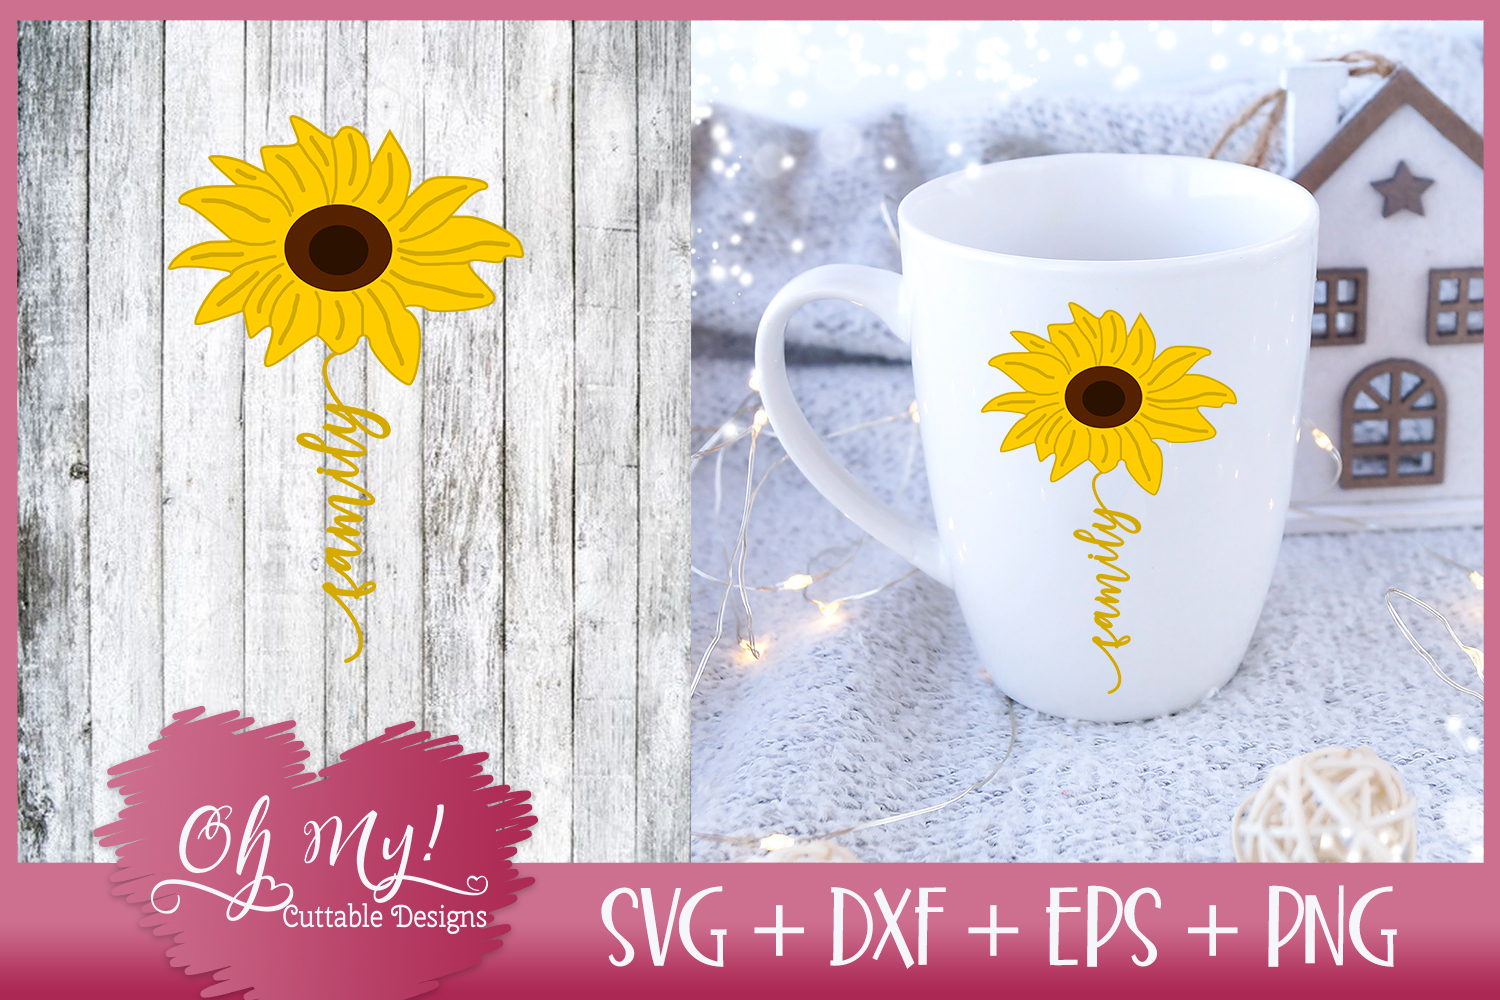 Family Sunflower - SVG EPS DXF PNG Cutting File example image 3